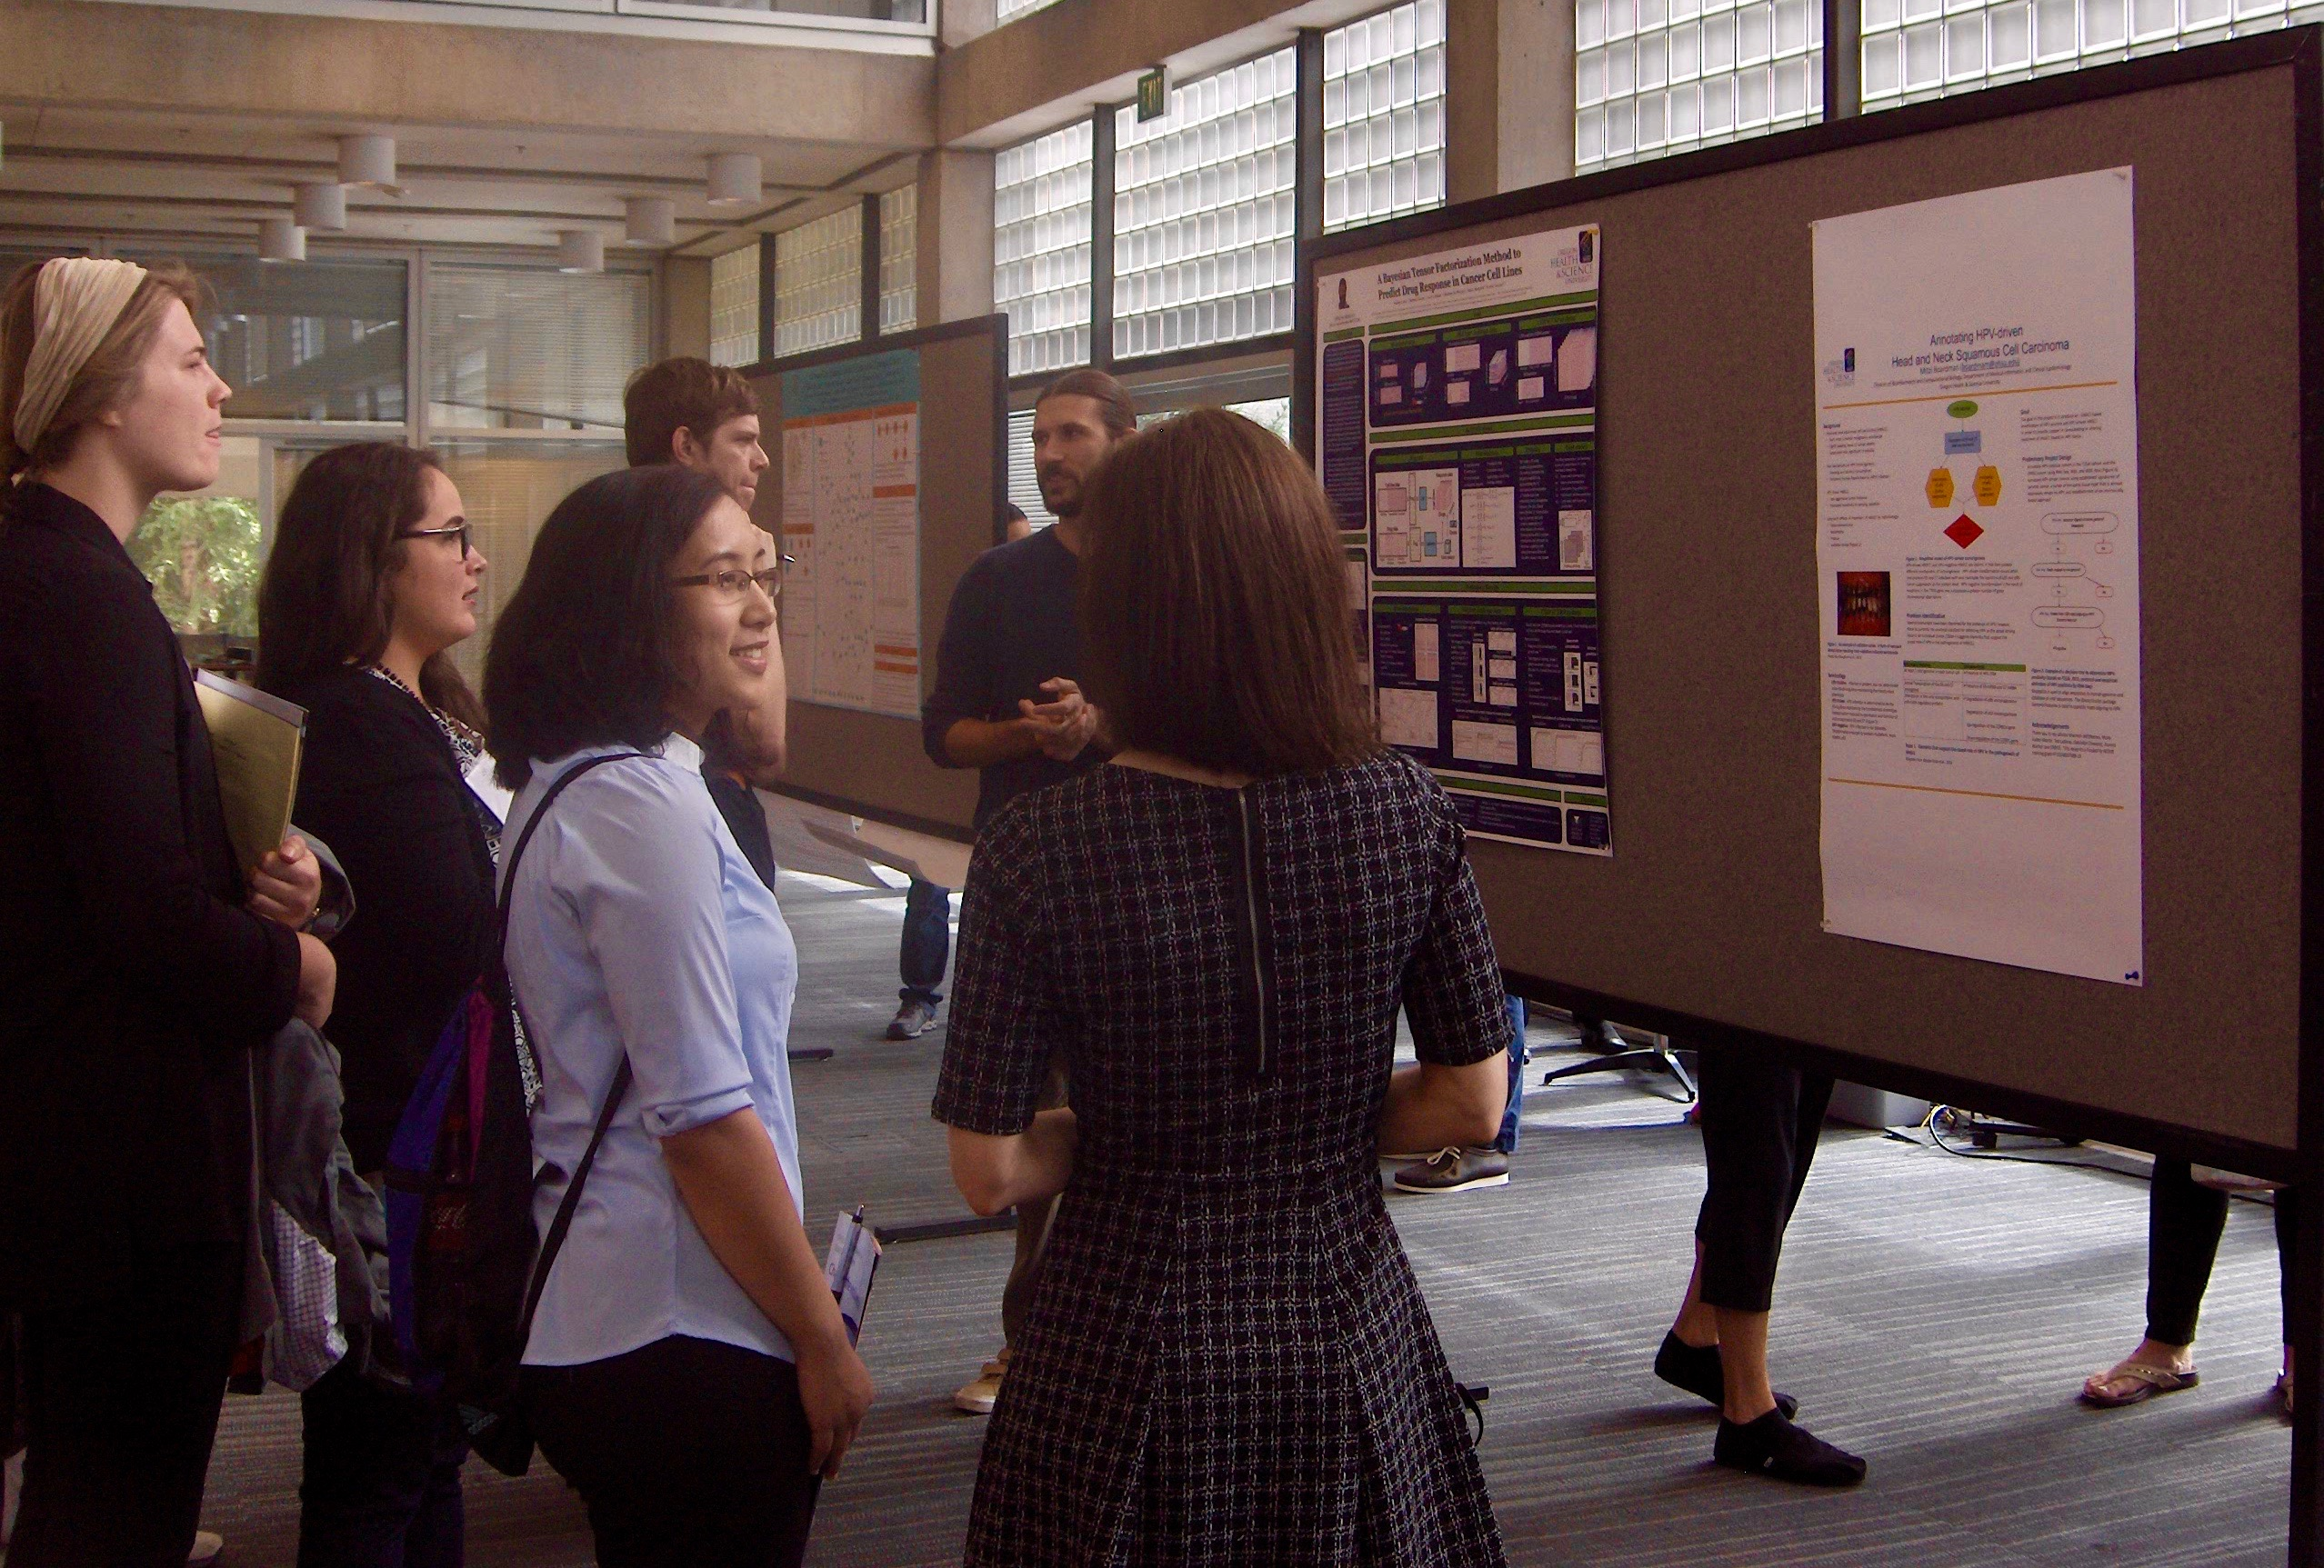 DMICE Students looking at posters